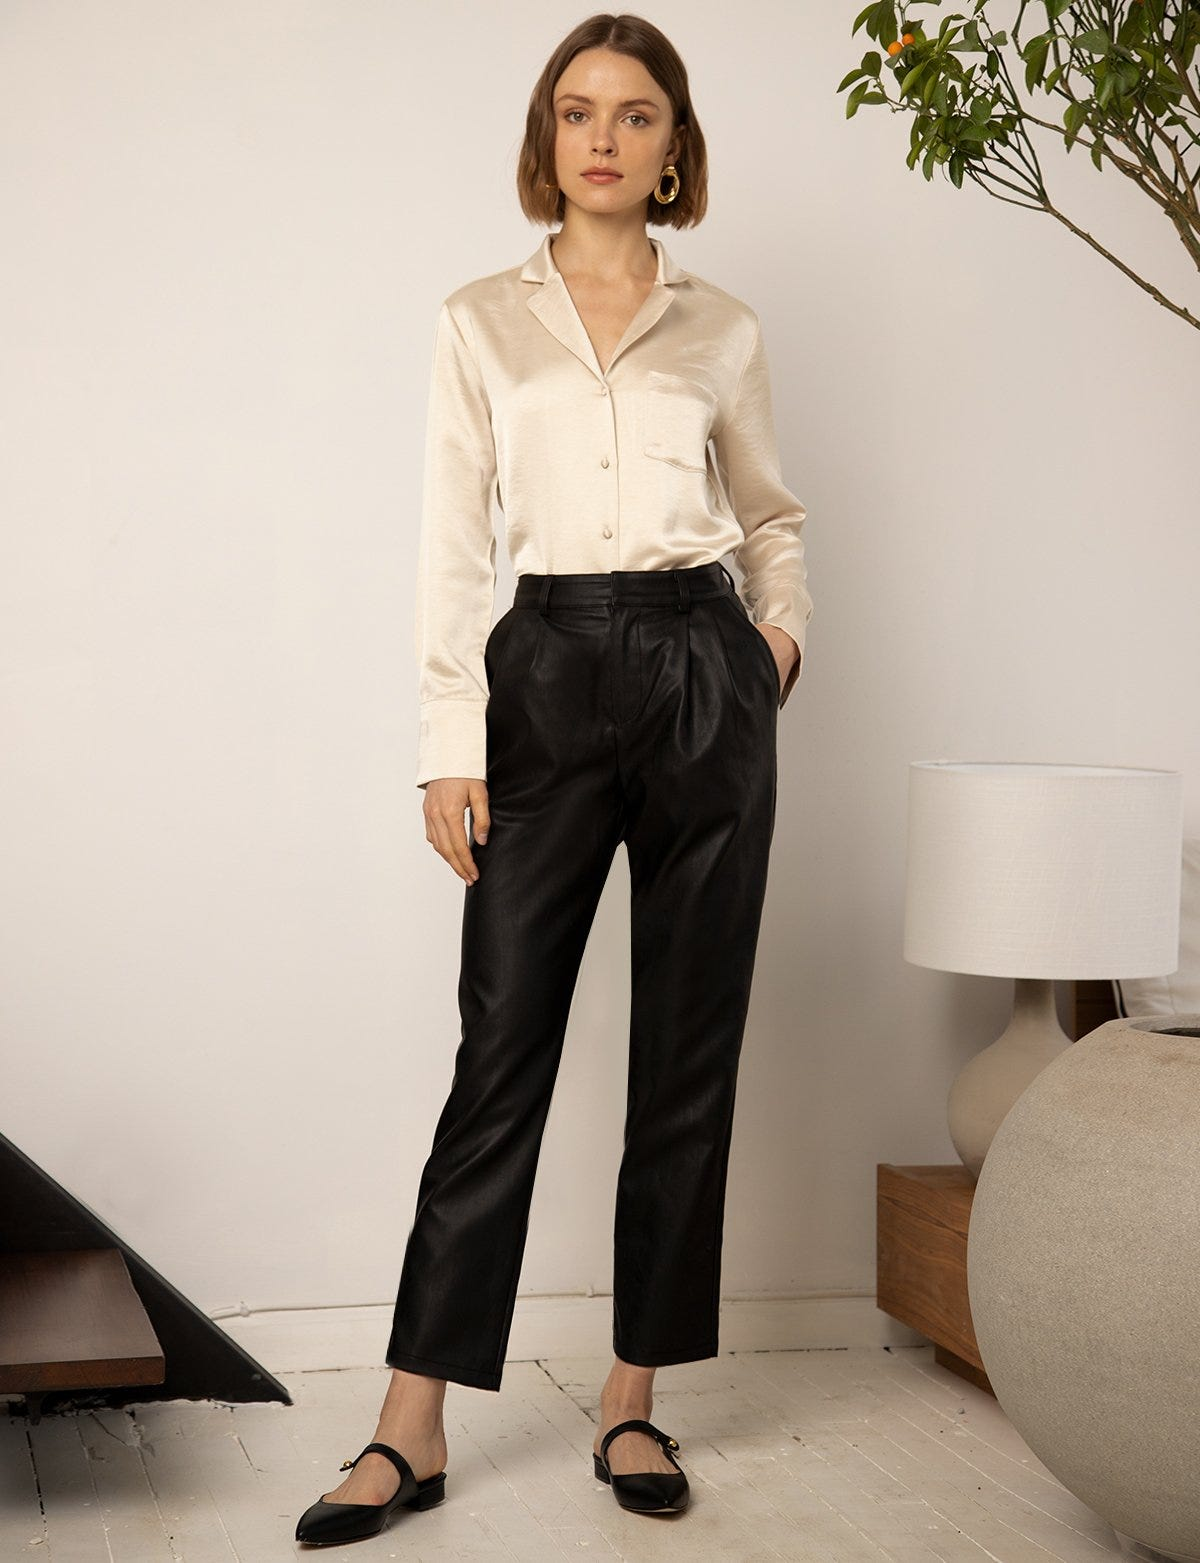 price reduced variousstyles new & pre-owned designer Leather Pants Trend Spring 2019, Vegan & Genuine Option